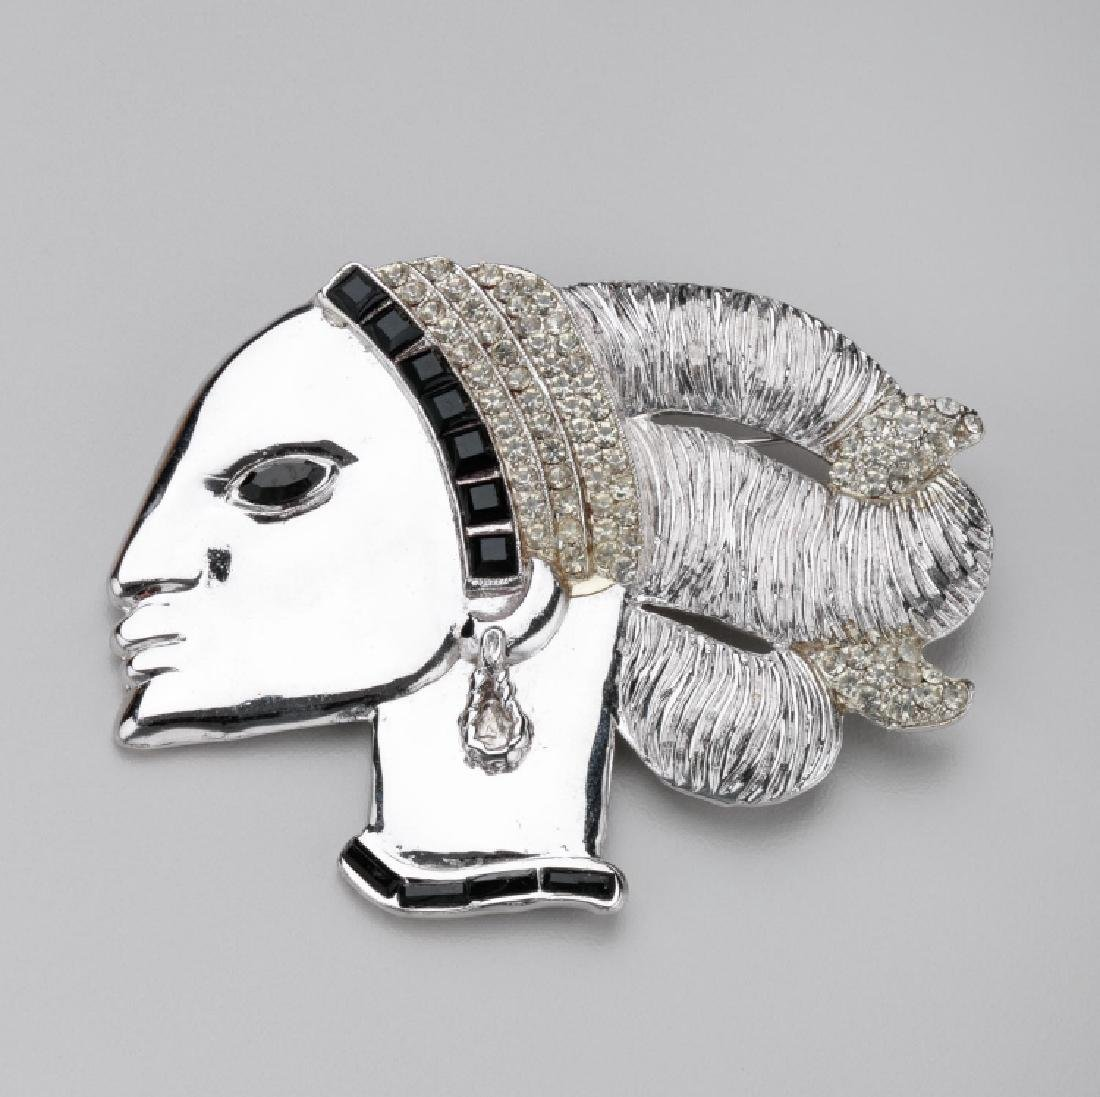 BUTLER & WILSON WOMAN IN PROFILE BROOCH